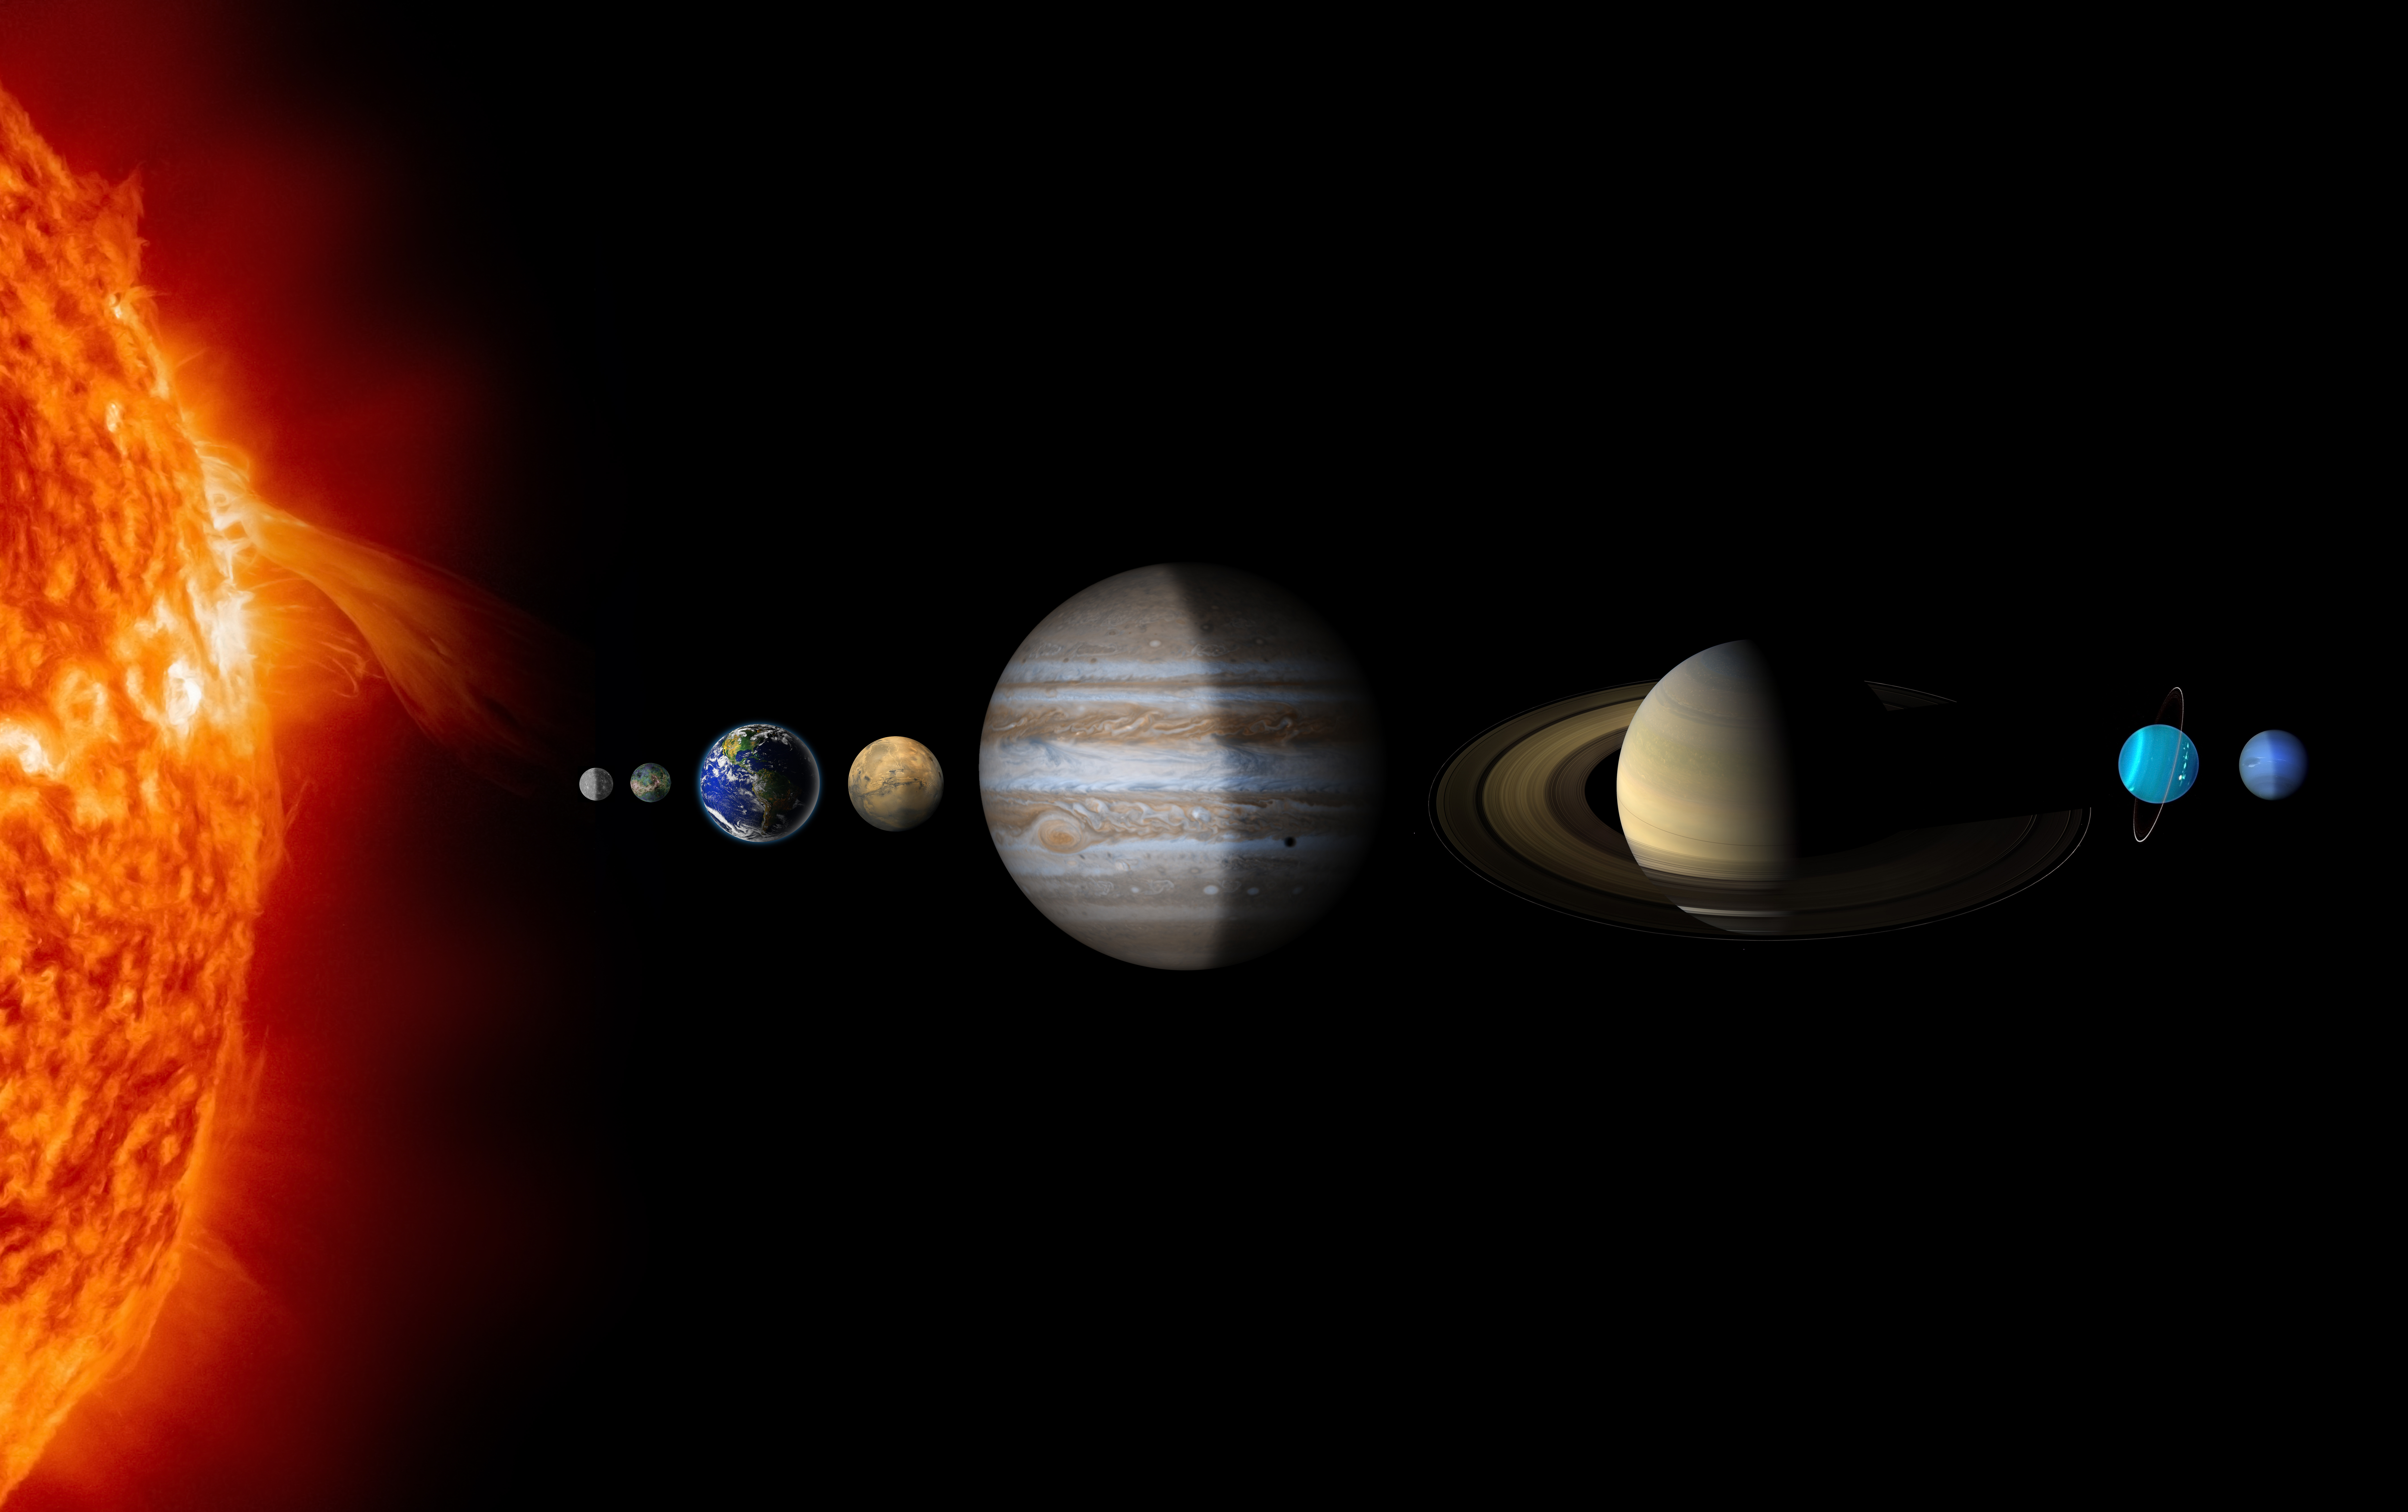 planets and solar system - HD1920×1206